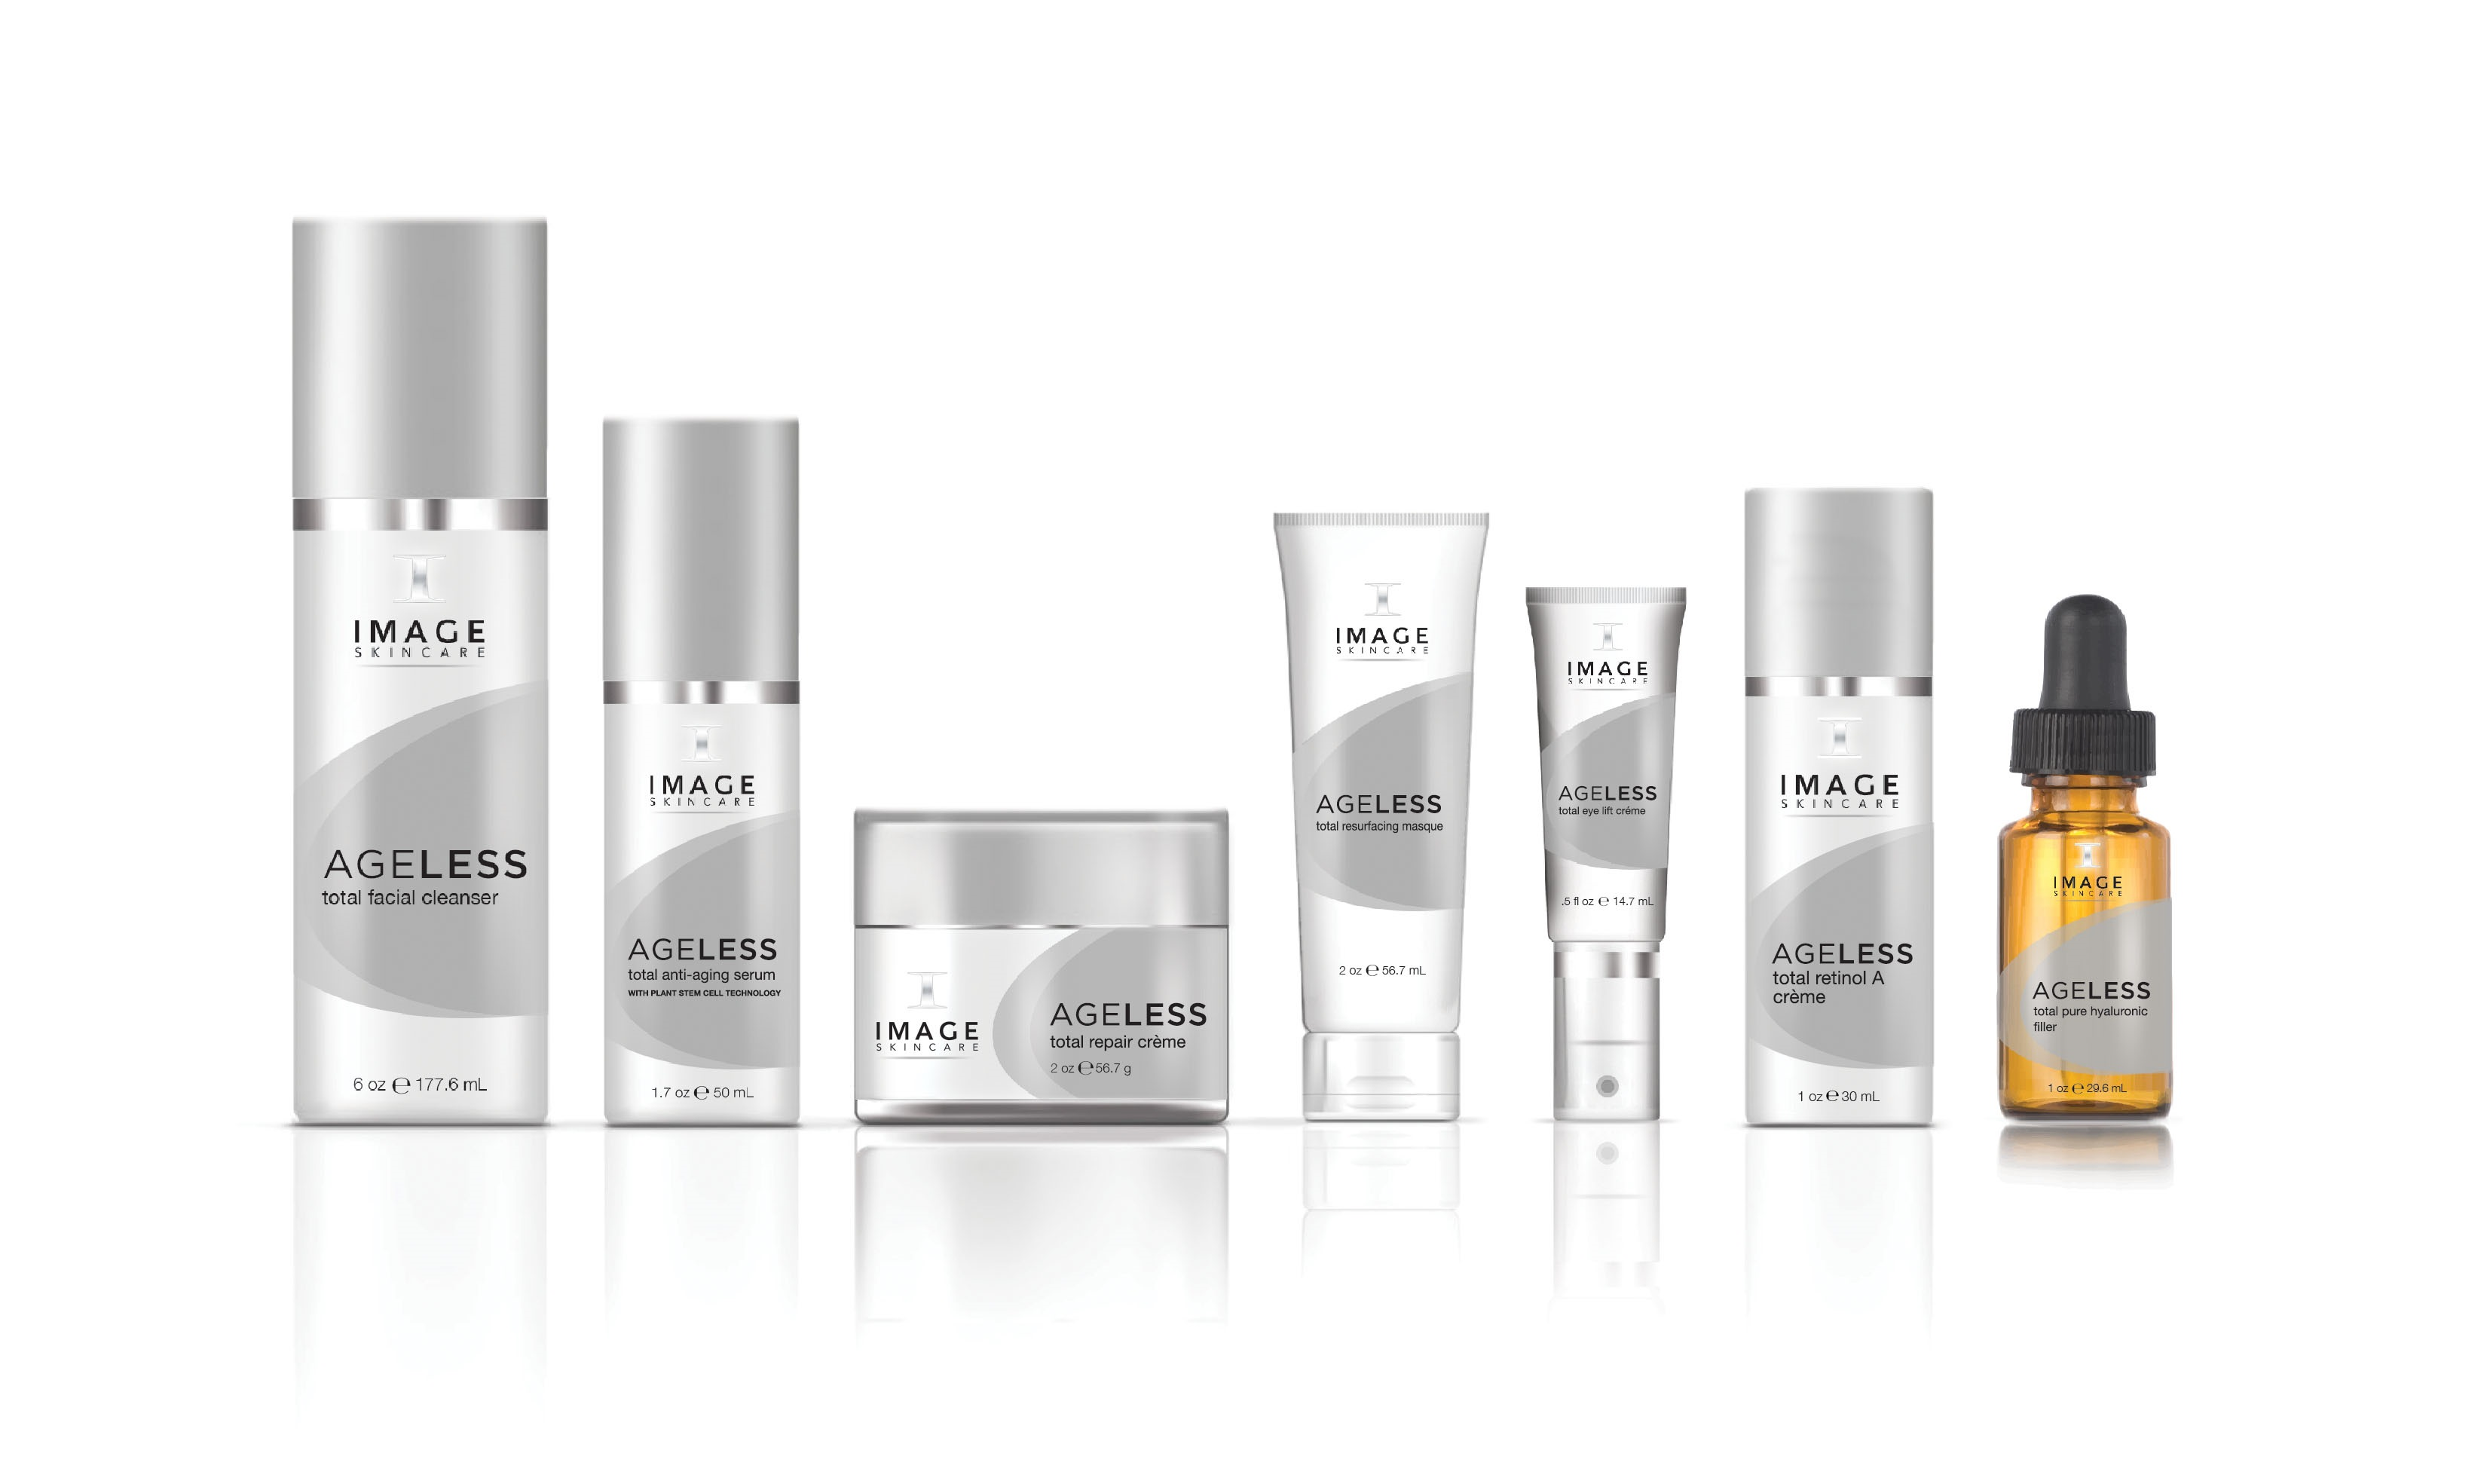 Ageless Skin Care Line